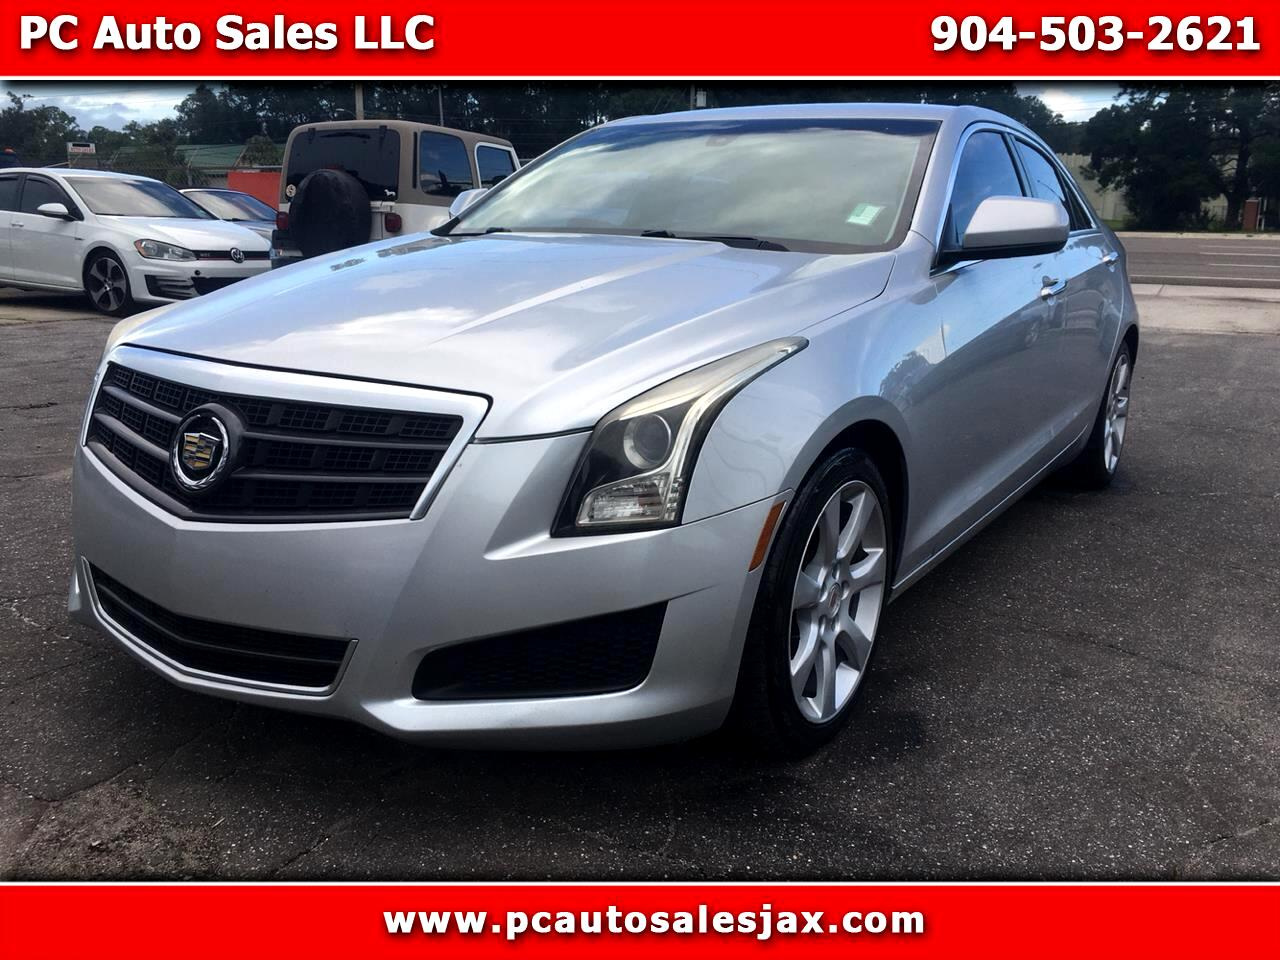 Cadillac ATS Sedan 4dr Sdn 2.0L Luxury AWD 2013